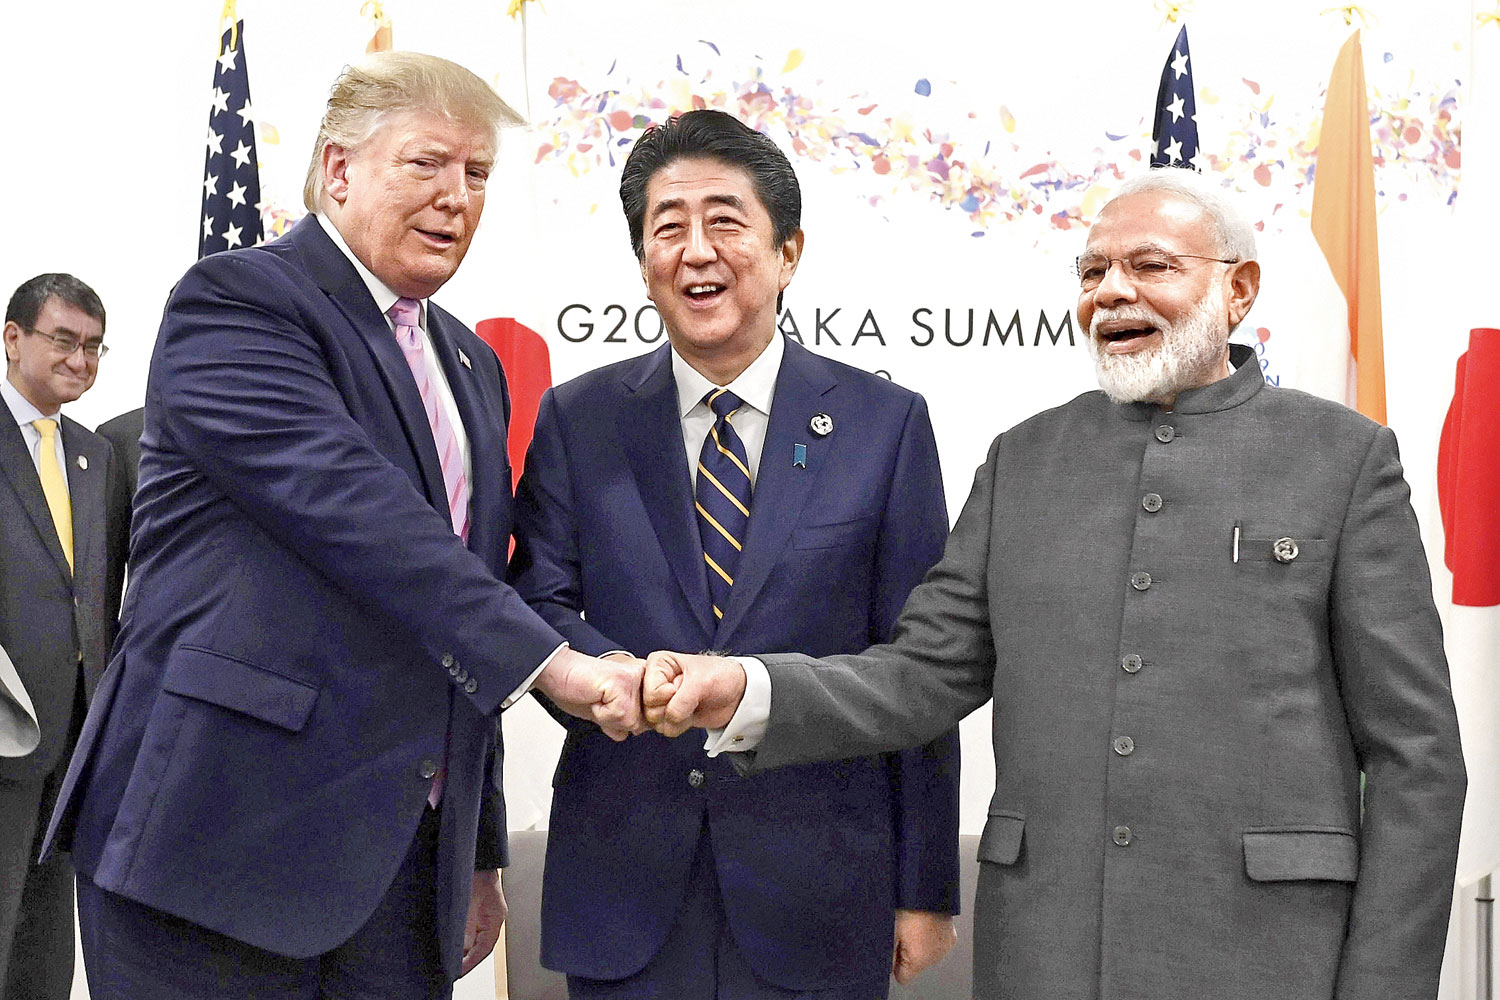 Donald Trump (left) does a fist bump with Shinzo Abe (centre) and Narendra Modi in Osaka on Friday.